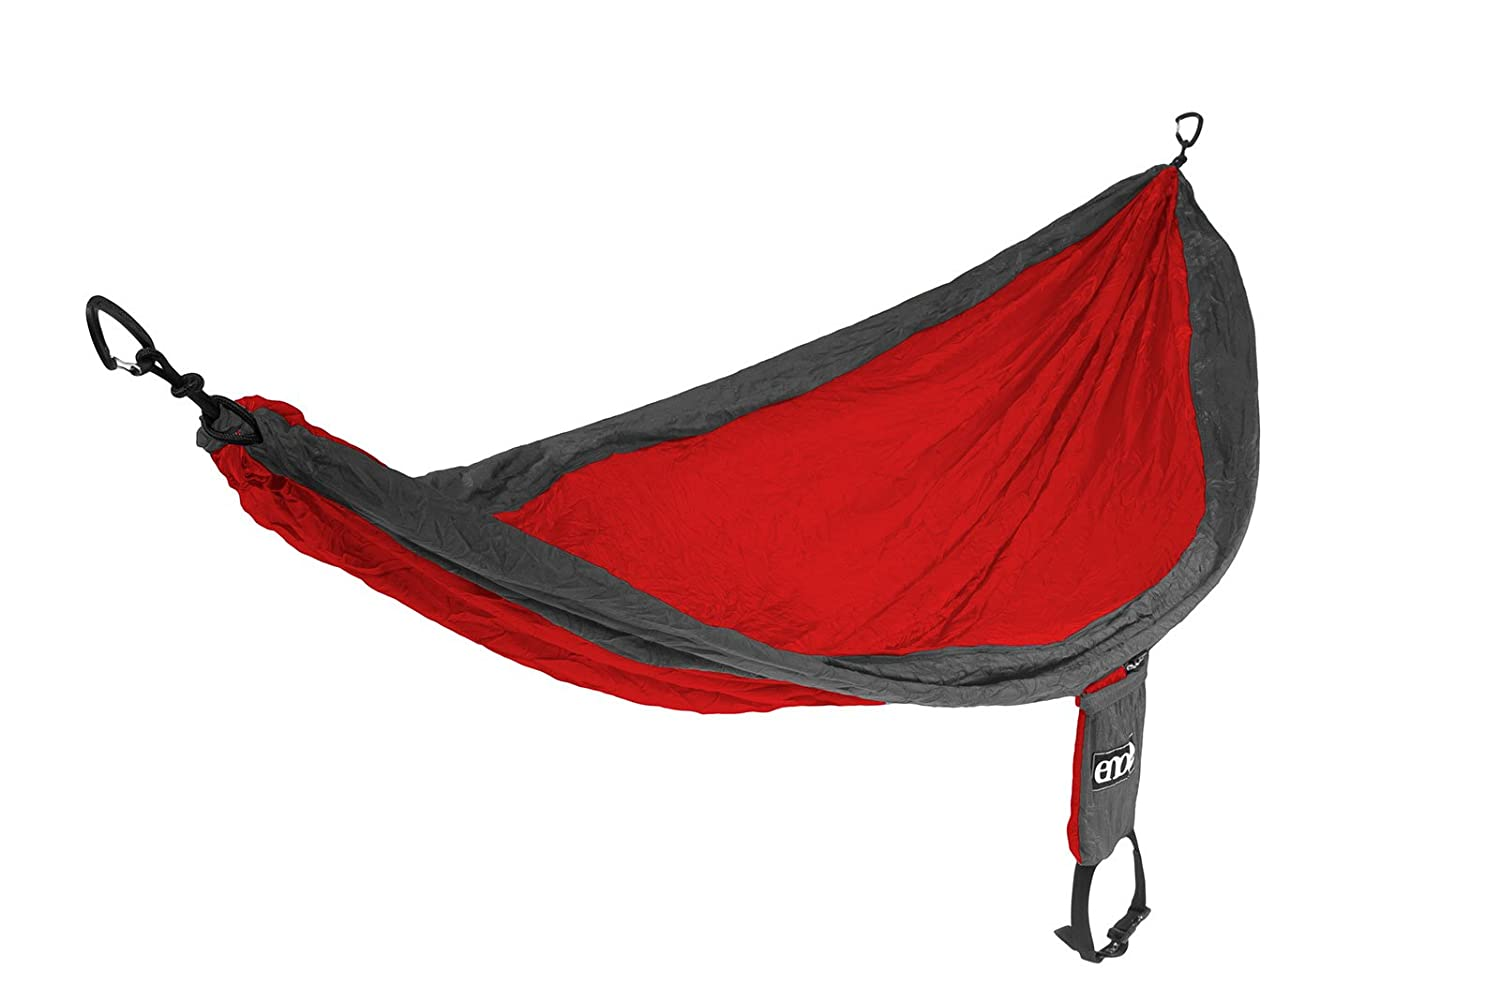 Eagles Nest Outfitters Singlenest amaca (rosso/antracite) ENO SH004